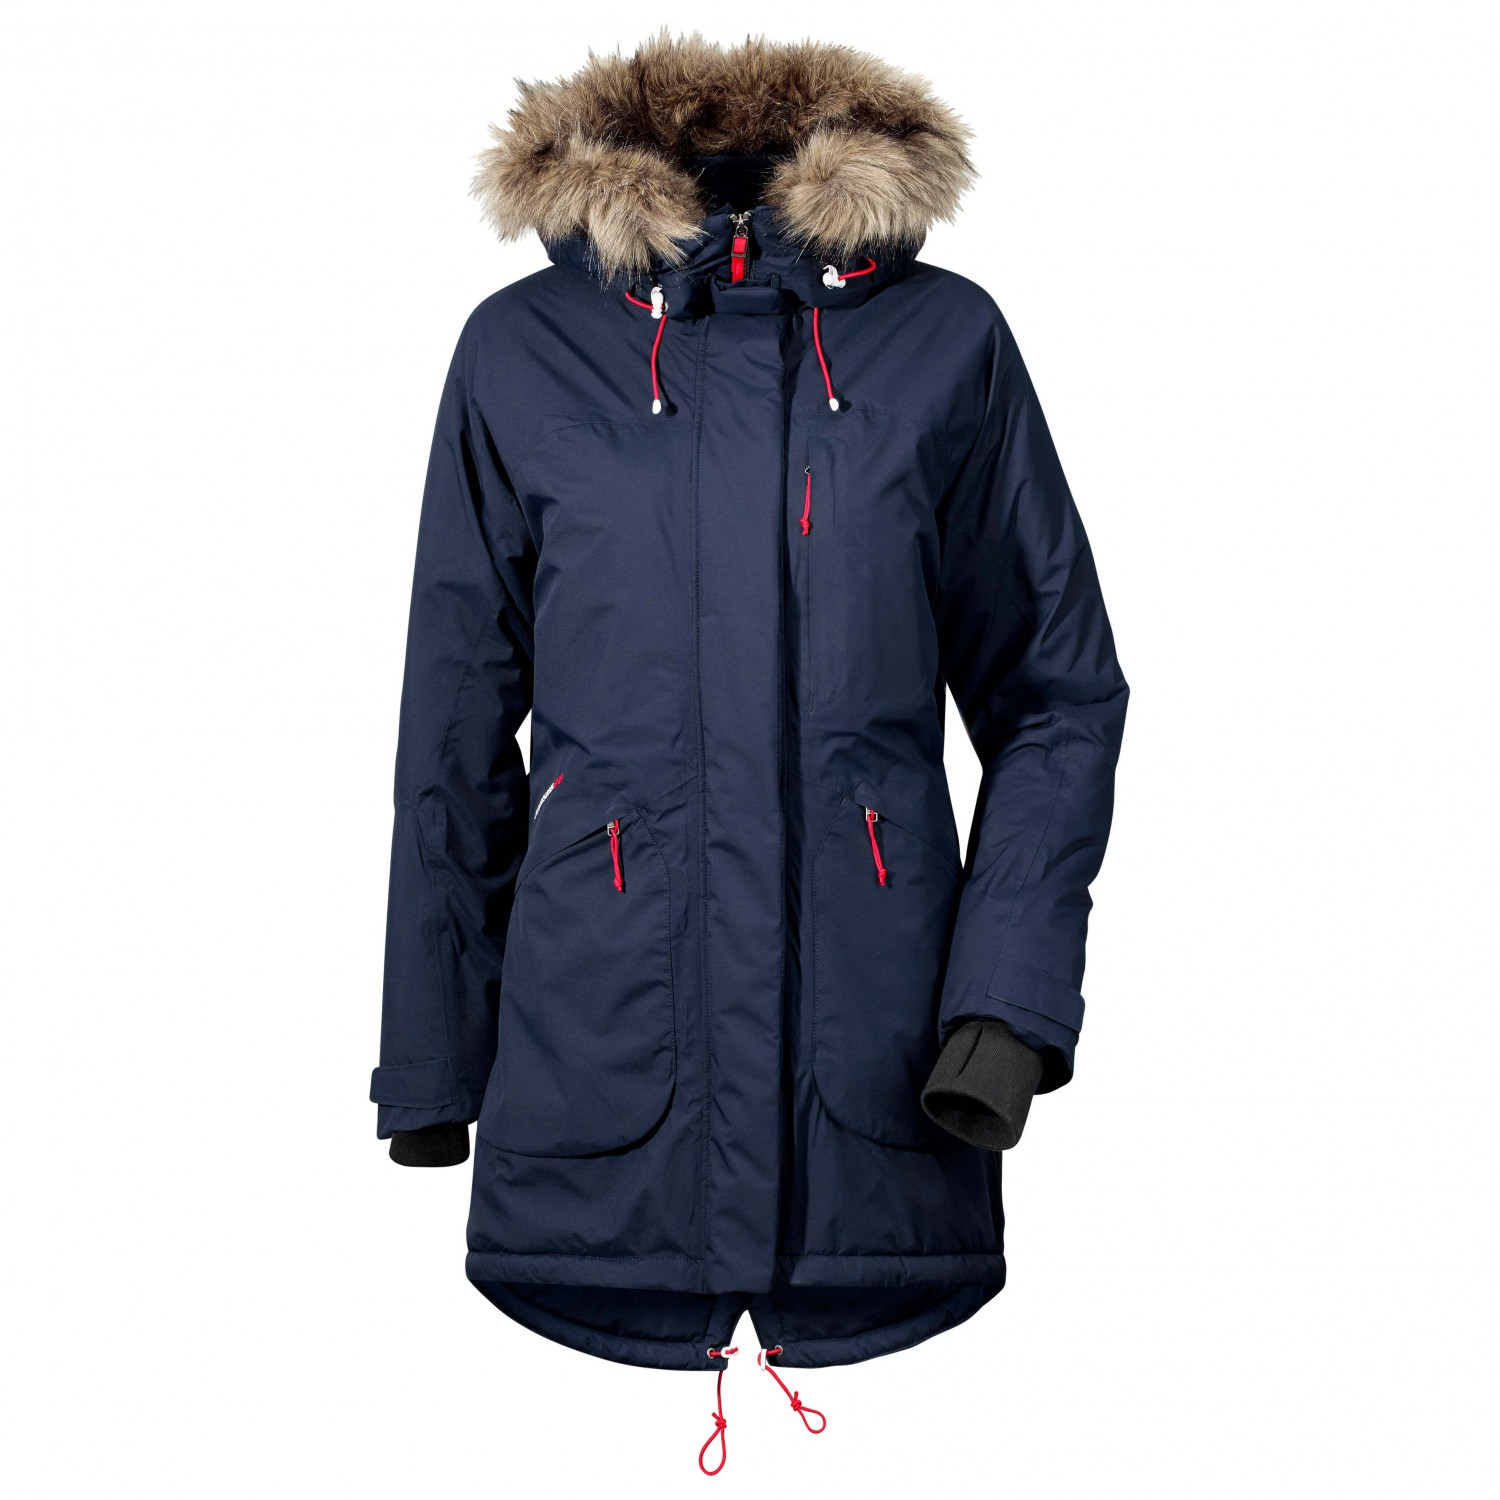 Didriksons Nancy Parka - Coat Women's | Free EU Delivery ...